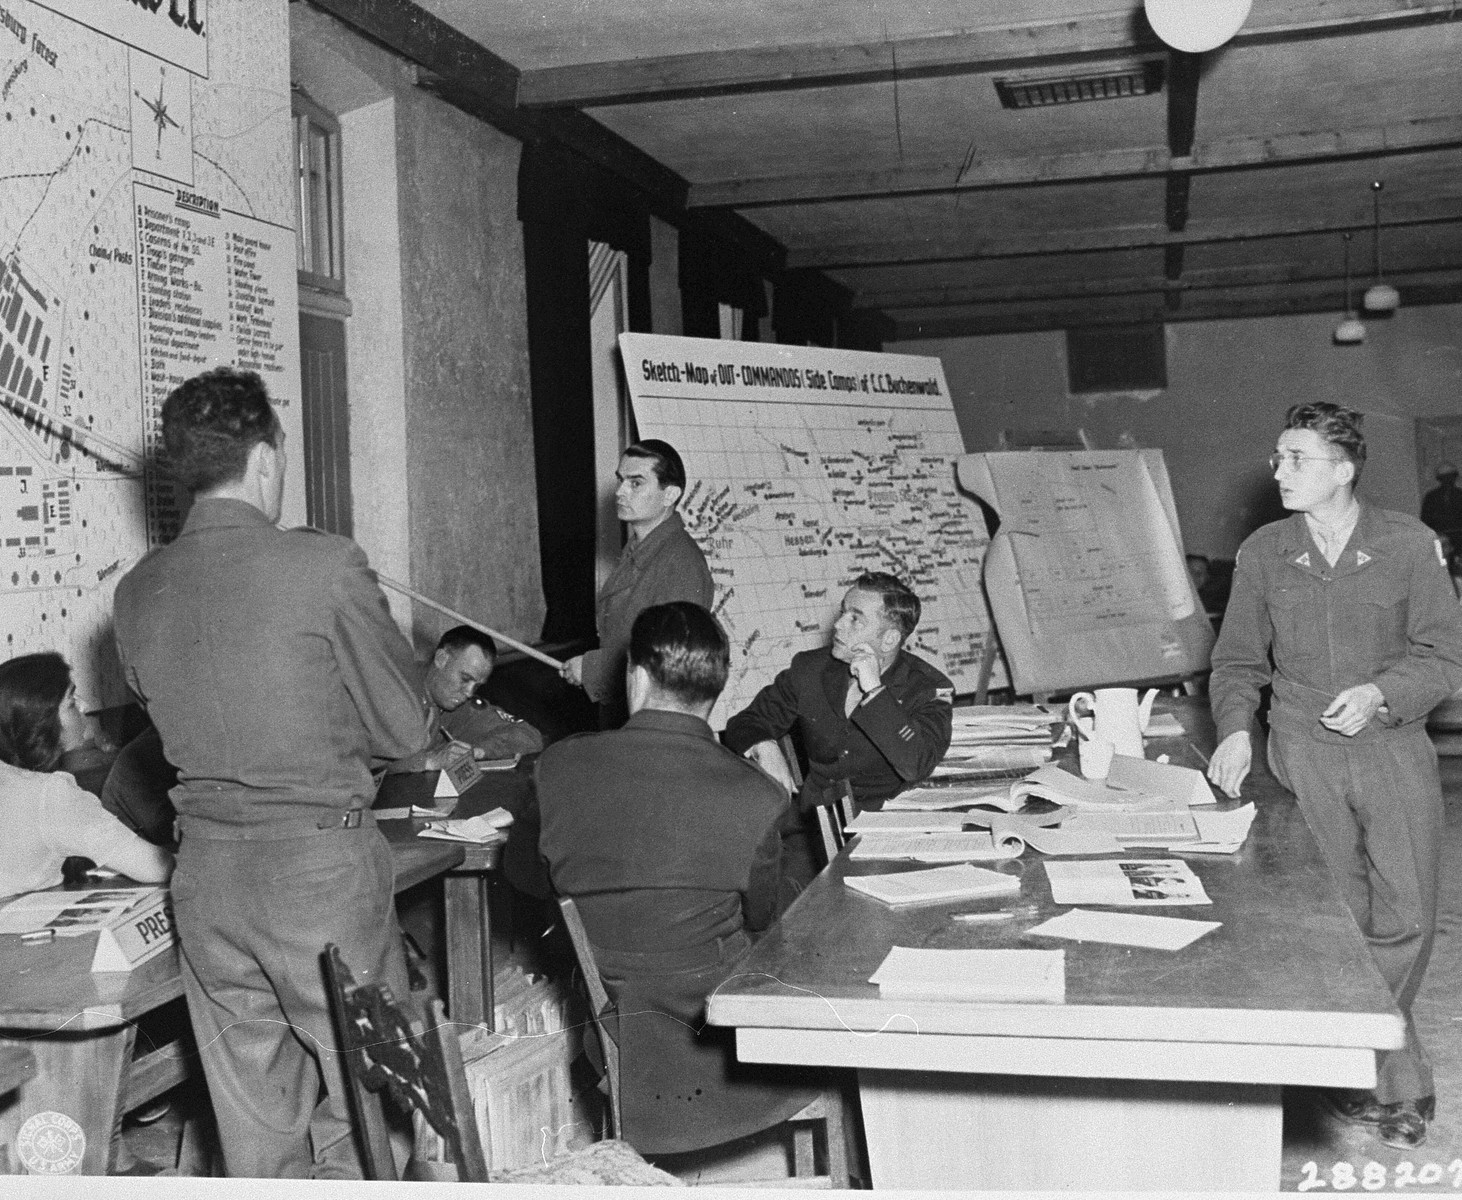 Wolfgang Otto, a former SS Sergeant, answers questions during the trial of 31 former camp personnel and prisoners from Buchenwald by indicating a spot on a map of the camp where prisoners were murdered.    Pictured on the far right is the interpreter Herbert Rosenstock, while sitting at the table with their backs to the camera are American lawyers Sol Surowitz (left) and Robert Kunzig.